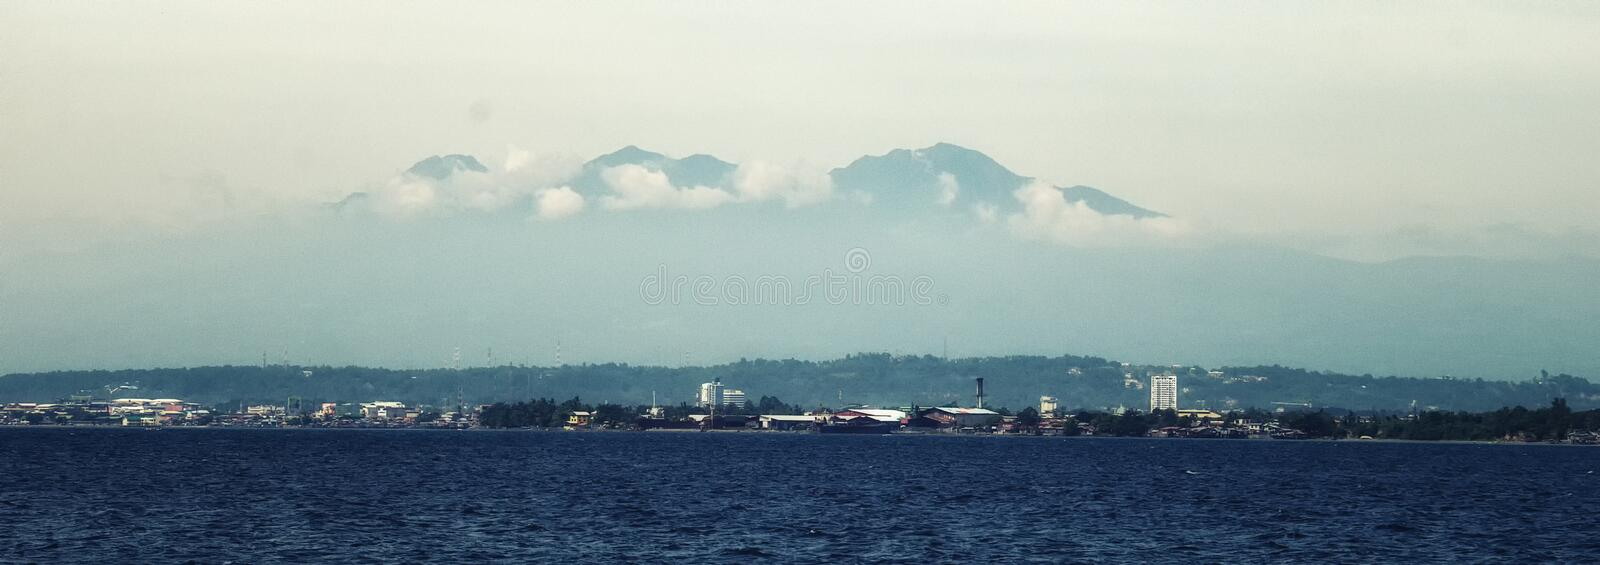 Davao city and Mount Apo. City of Davao is a highly urbanized city in the island of Mindanao, Philippines stock image